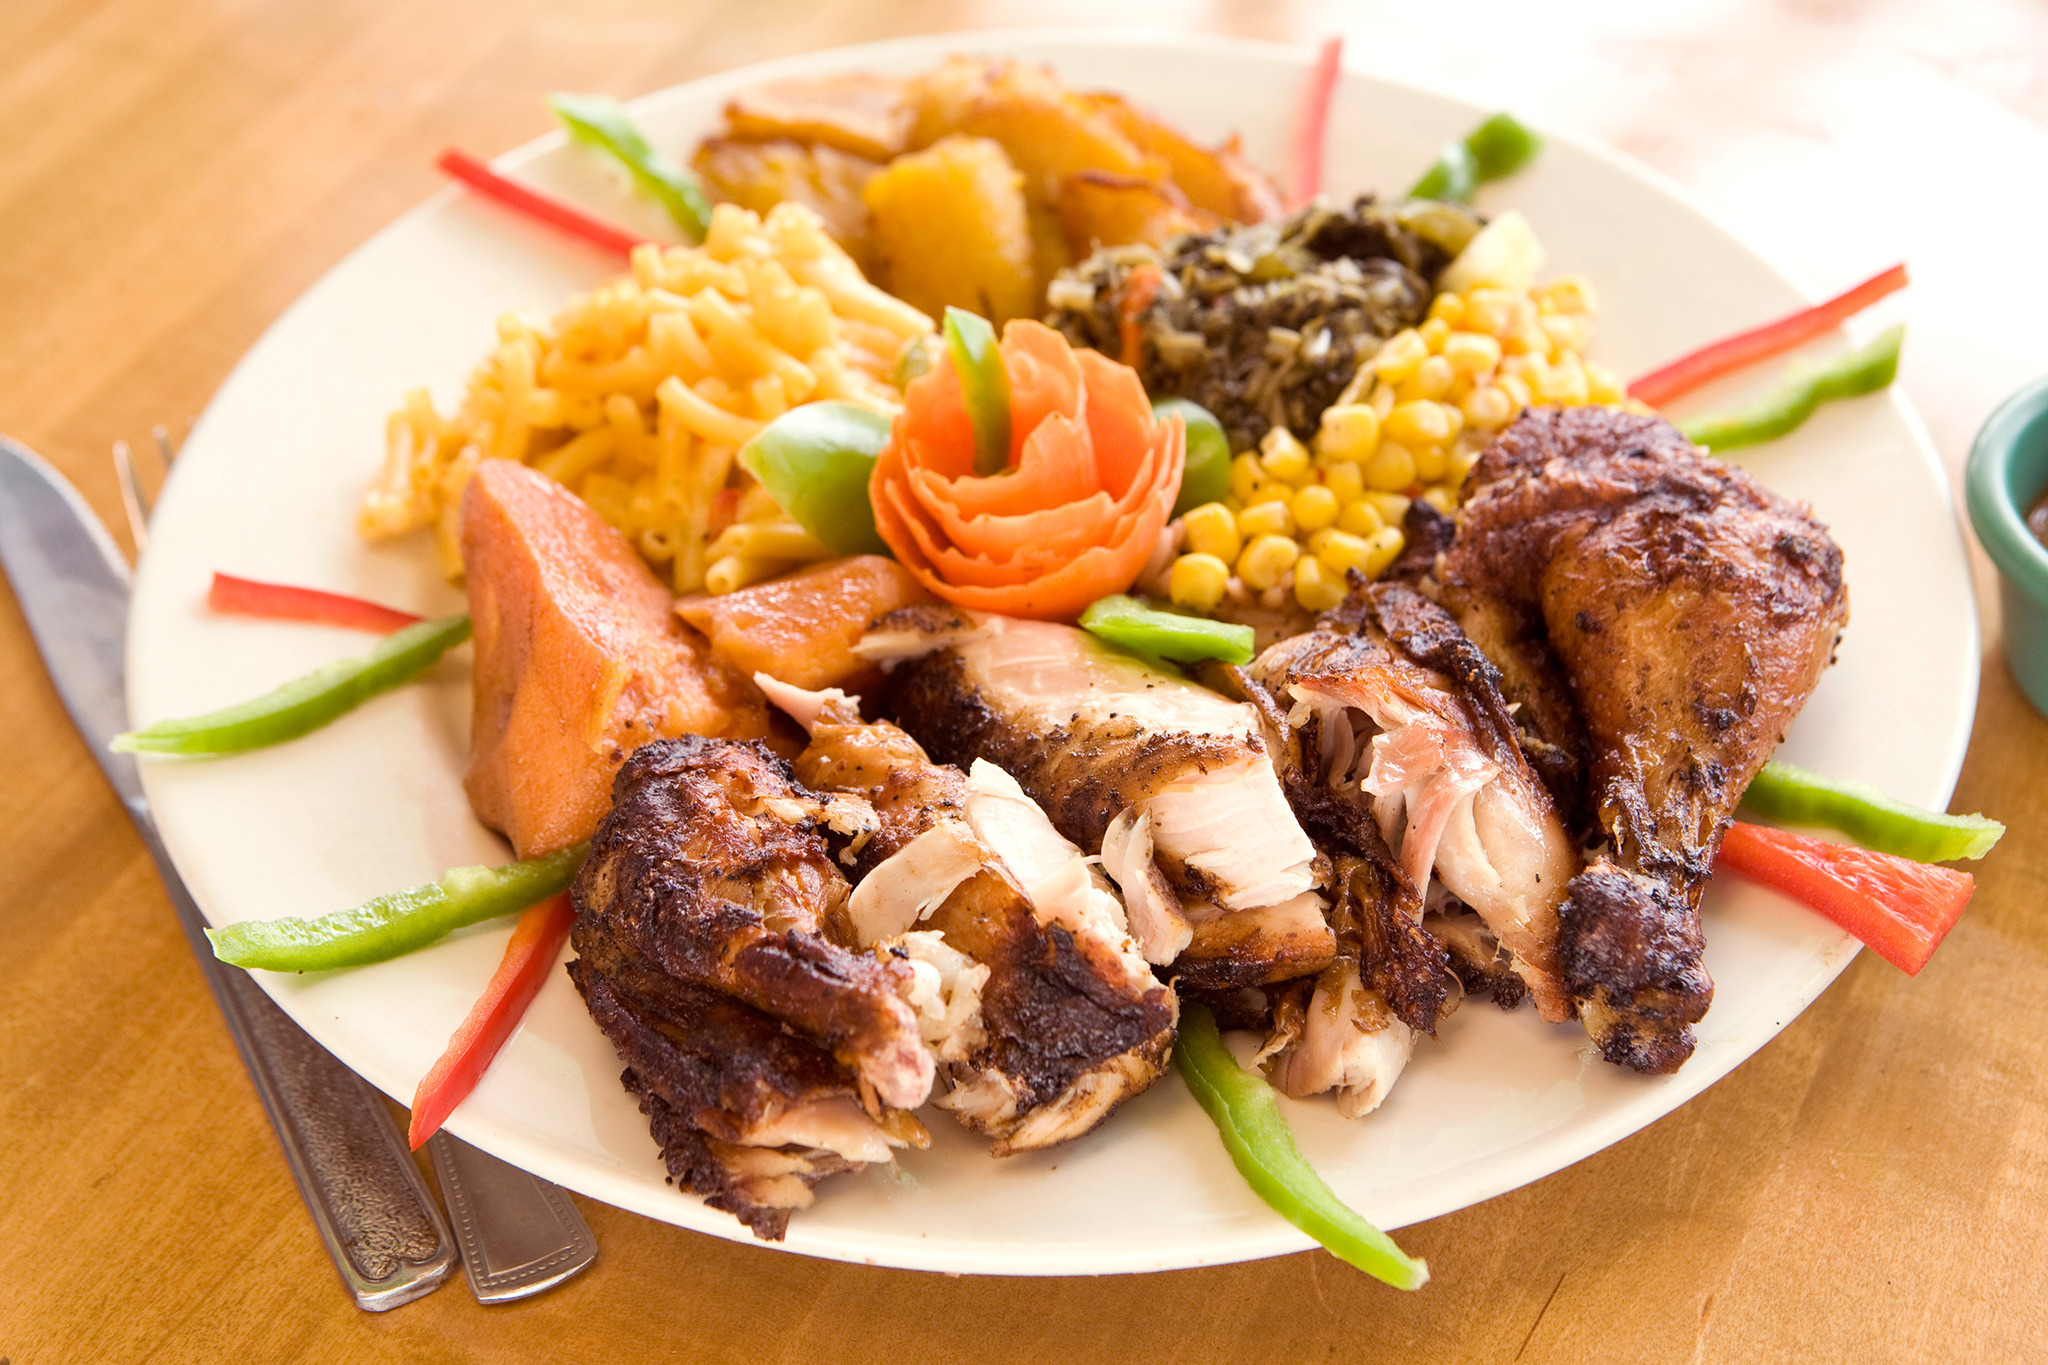 Chicago Jamaican restaurant guide: jerk chicken and more